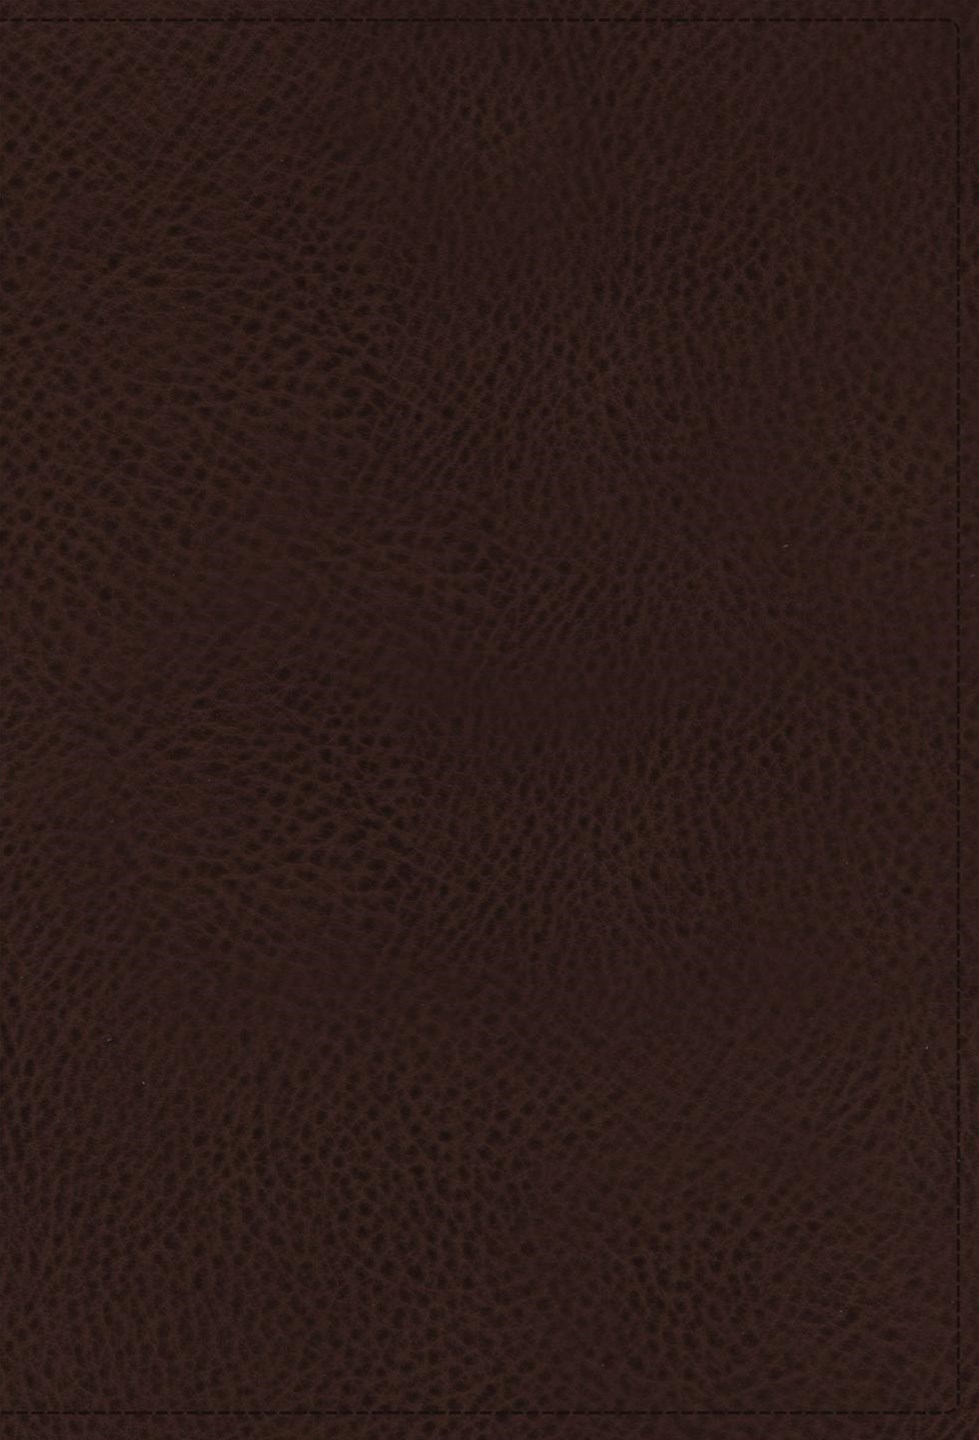 NKJV Minister's Bible Red Letter Edition [Brown]